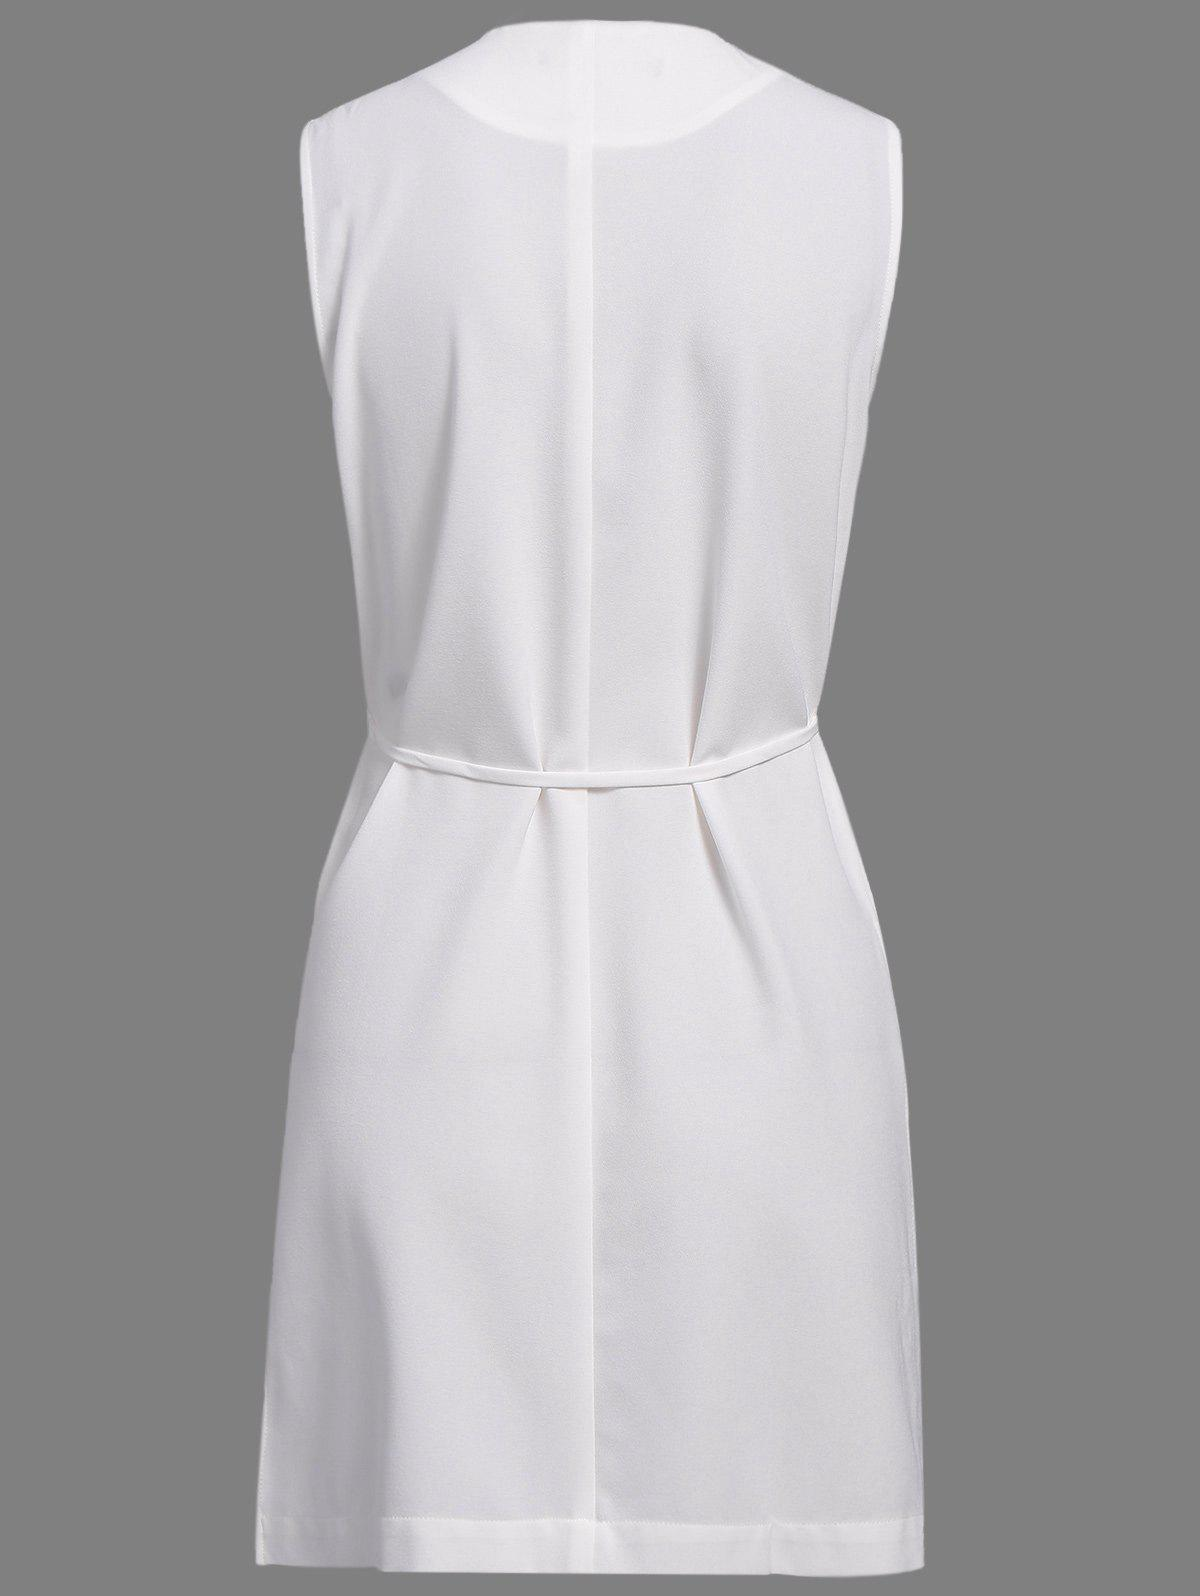 OL Style Solid Color Turn-Down Collar Slit Vest For Women - OFF WHITE S